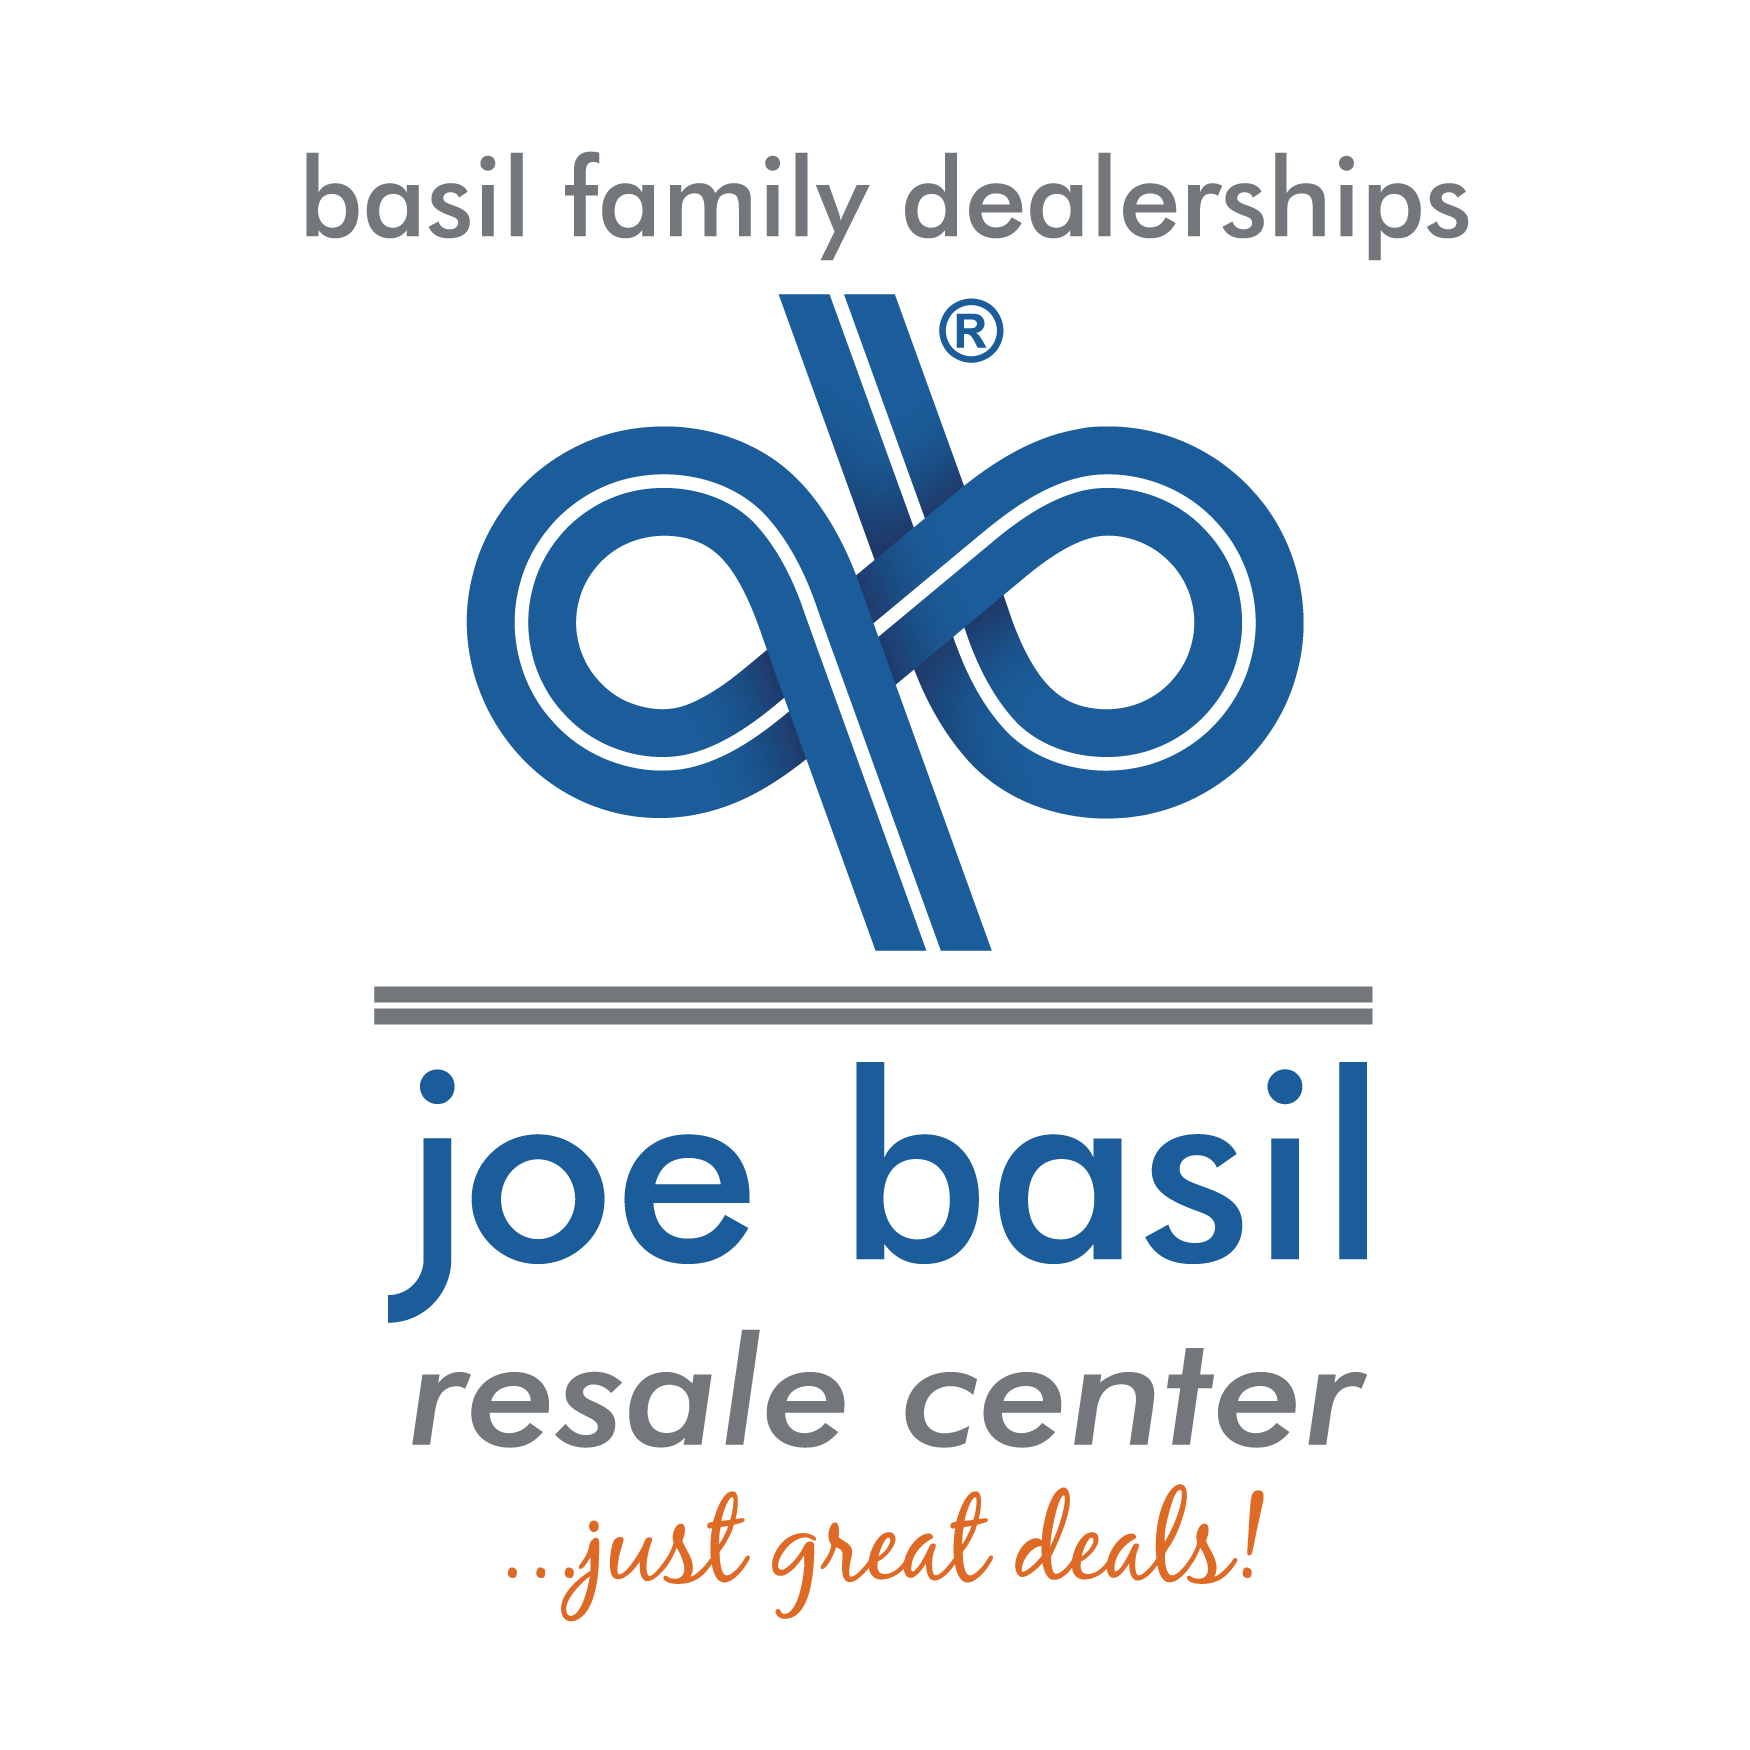 jbc-resale-color-stacked